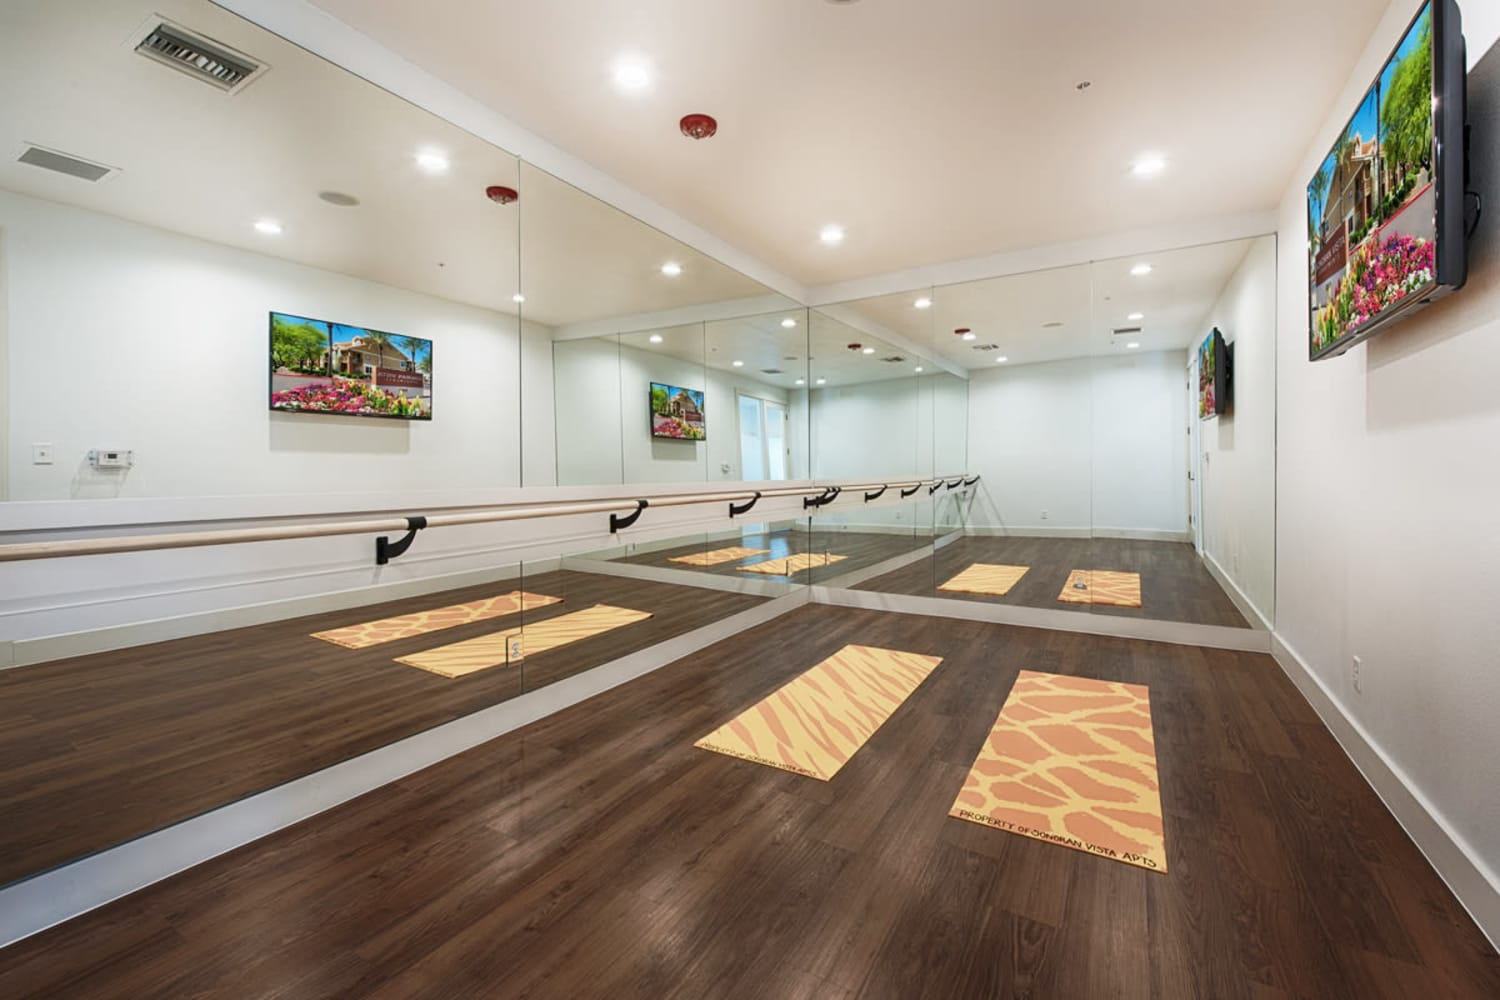 Mirrored gym area at Sonoran Vista Apartments in Scottsdale, Arizona